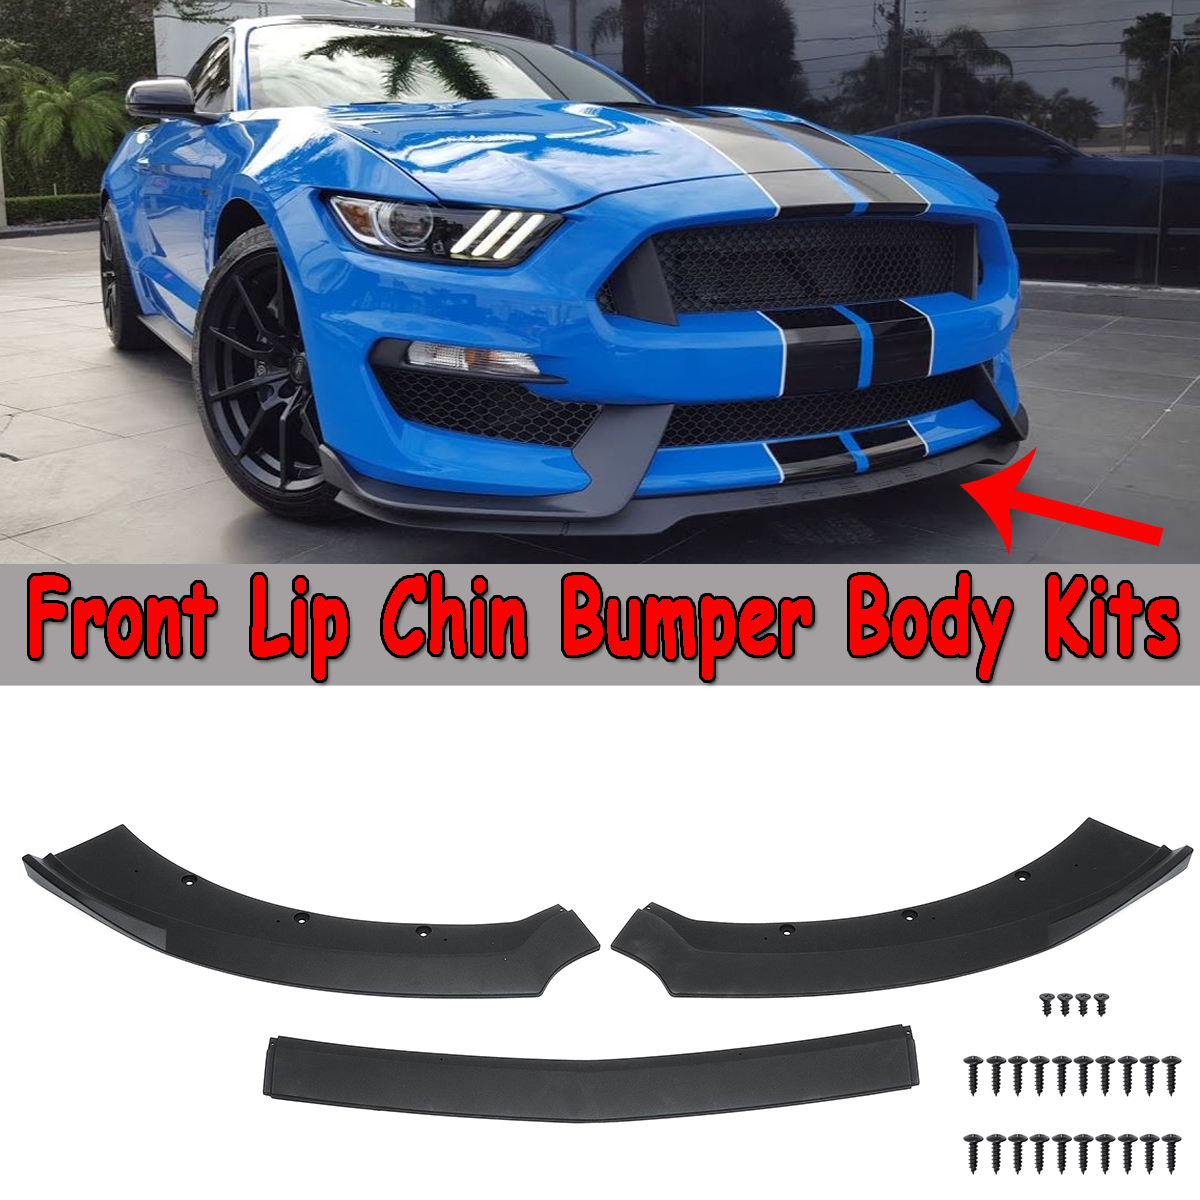 New 3 Pcs Black Car Front Bumper Lip Chin Spoiler Splitters Diffuser Body Kits Protector For Ford For Mustang 2015 2016 2017